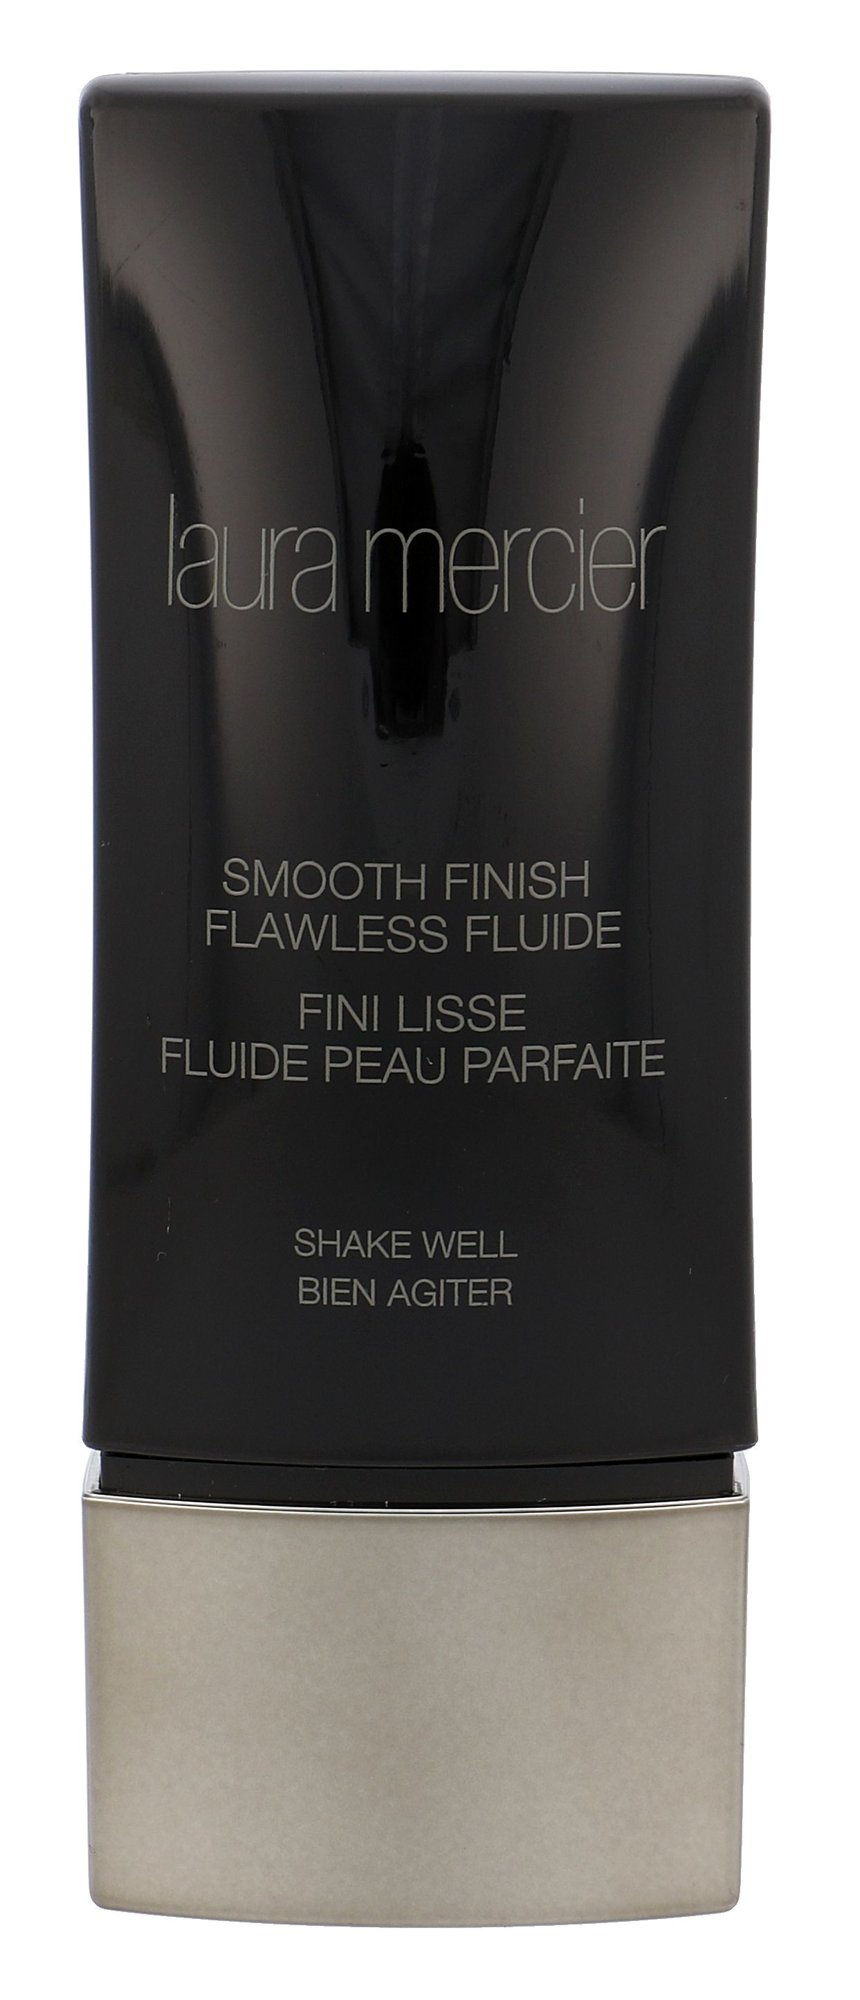 Laura Mercier Smooth Finish Flawless Fluide Cosmetic 30ml Dune